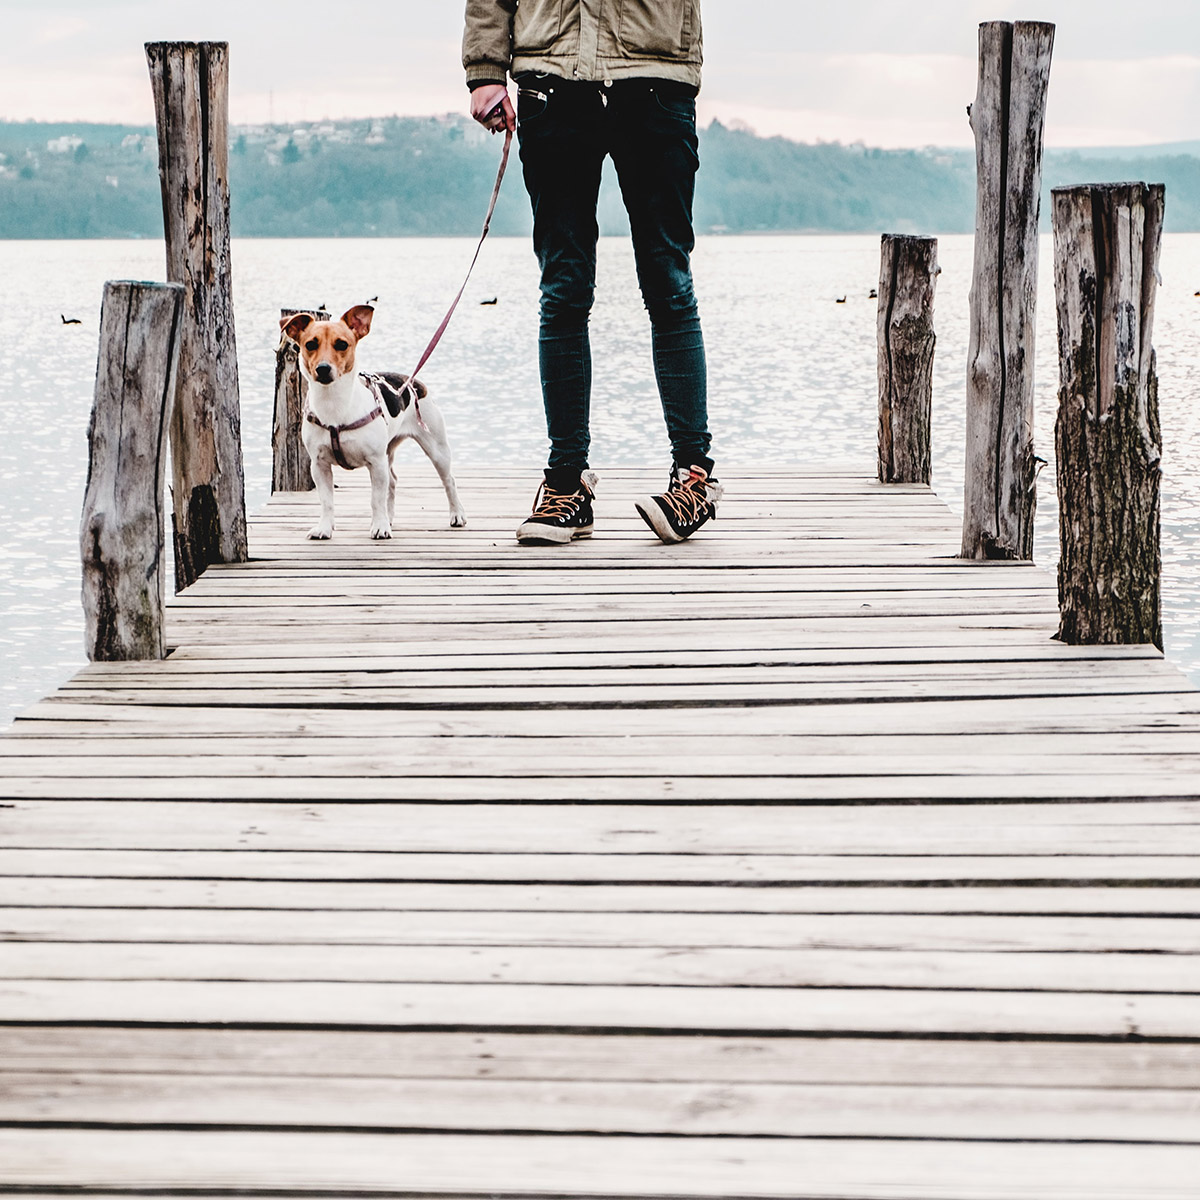 Travel to EU after Brexit - Pet Travel